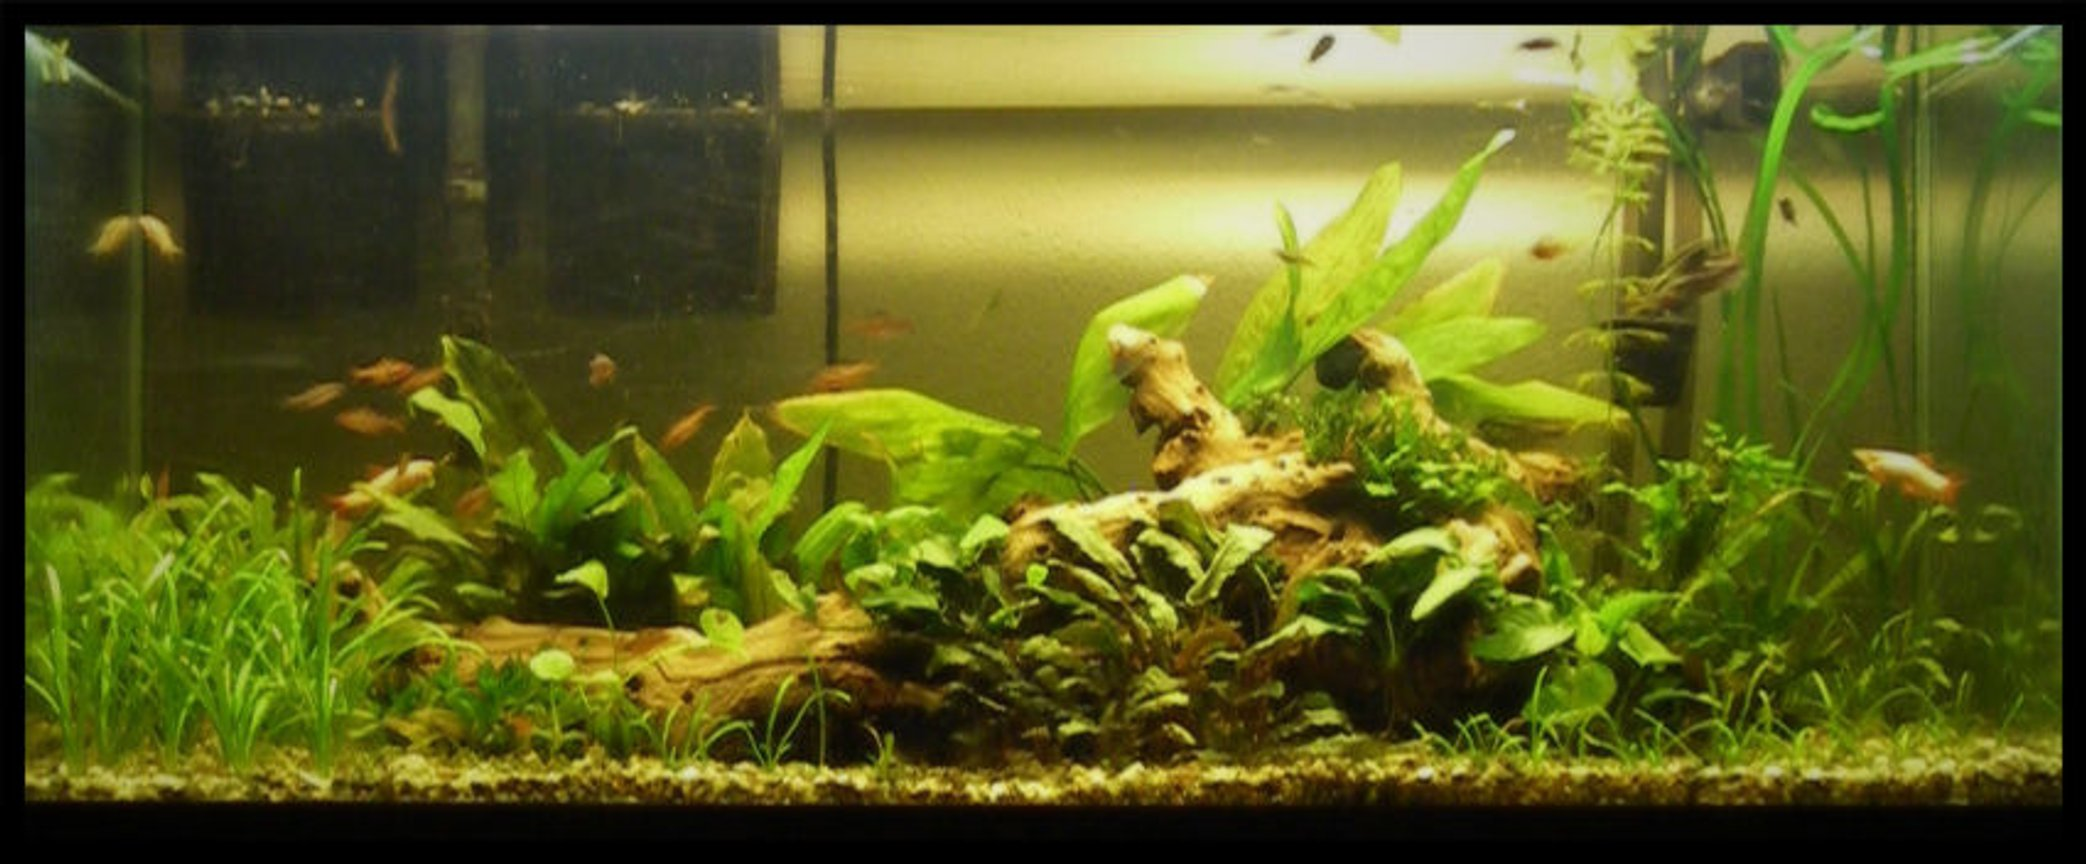 75 gallons planted tank (mostly live plants and fish) - 75g Planted. 30 species of plants and tons of fish.